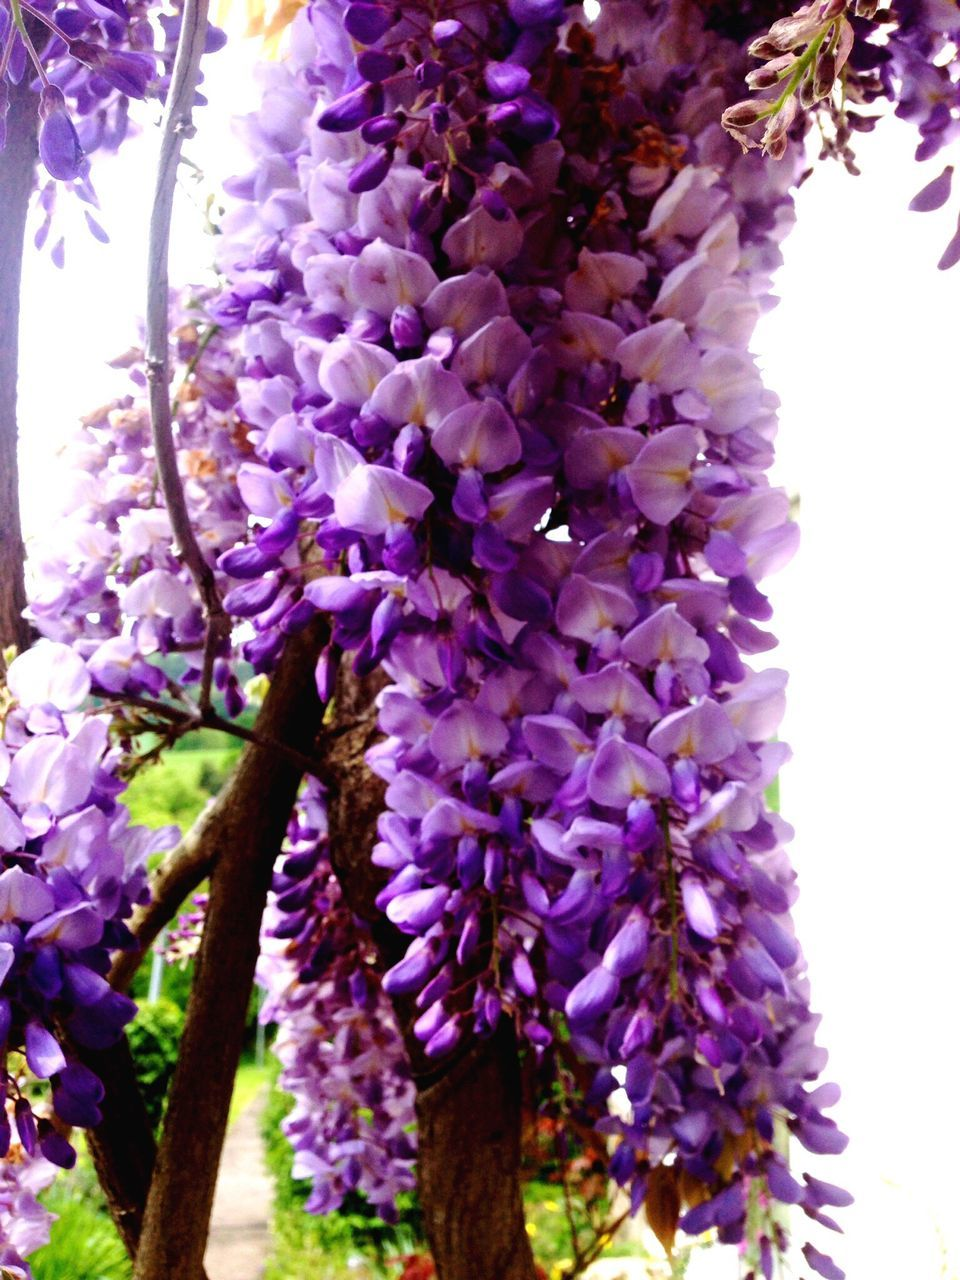 flower, purple, wisteria, fragility, growth, freshness, blossom, springtime, beauty in nature, lavender colored, nature, botany, no people, branch, scented, tree, day, petal, close-up, low angle view, lilac, hanging, outdoors, flower head